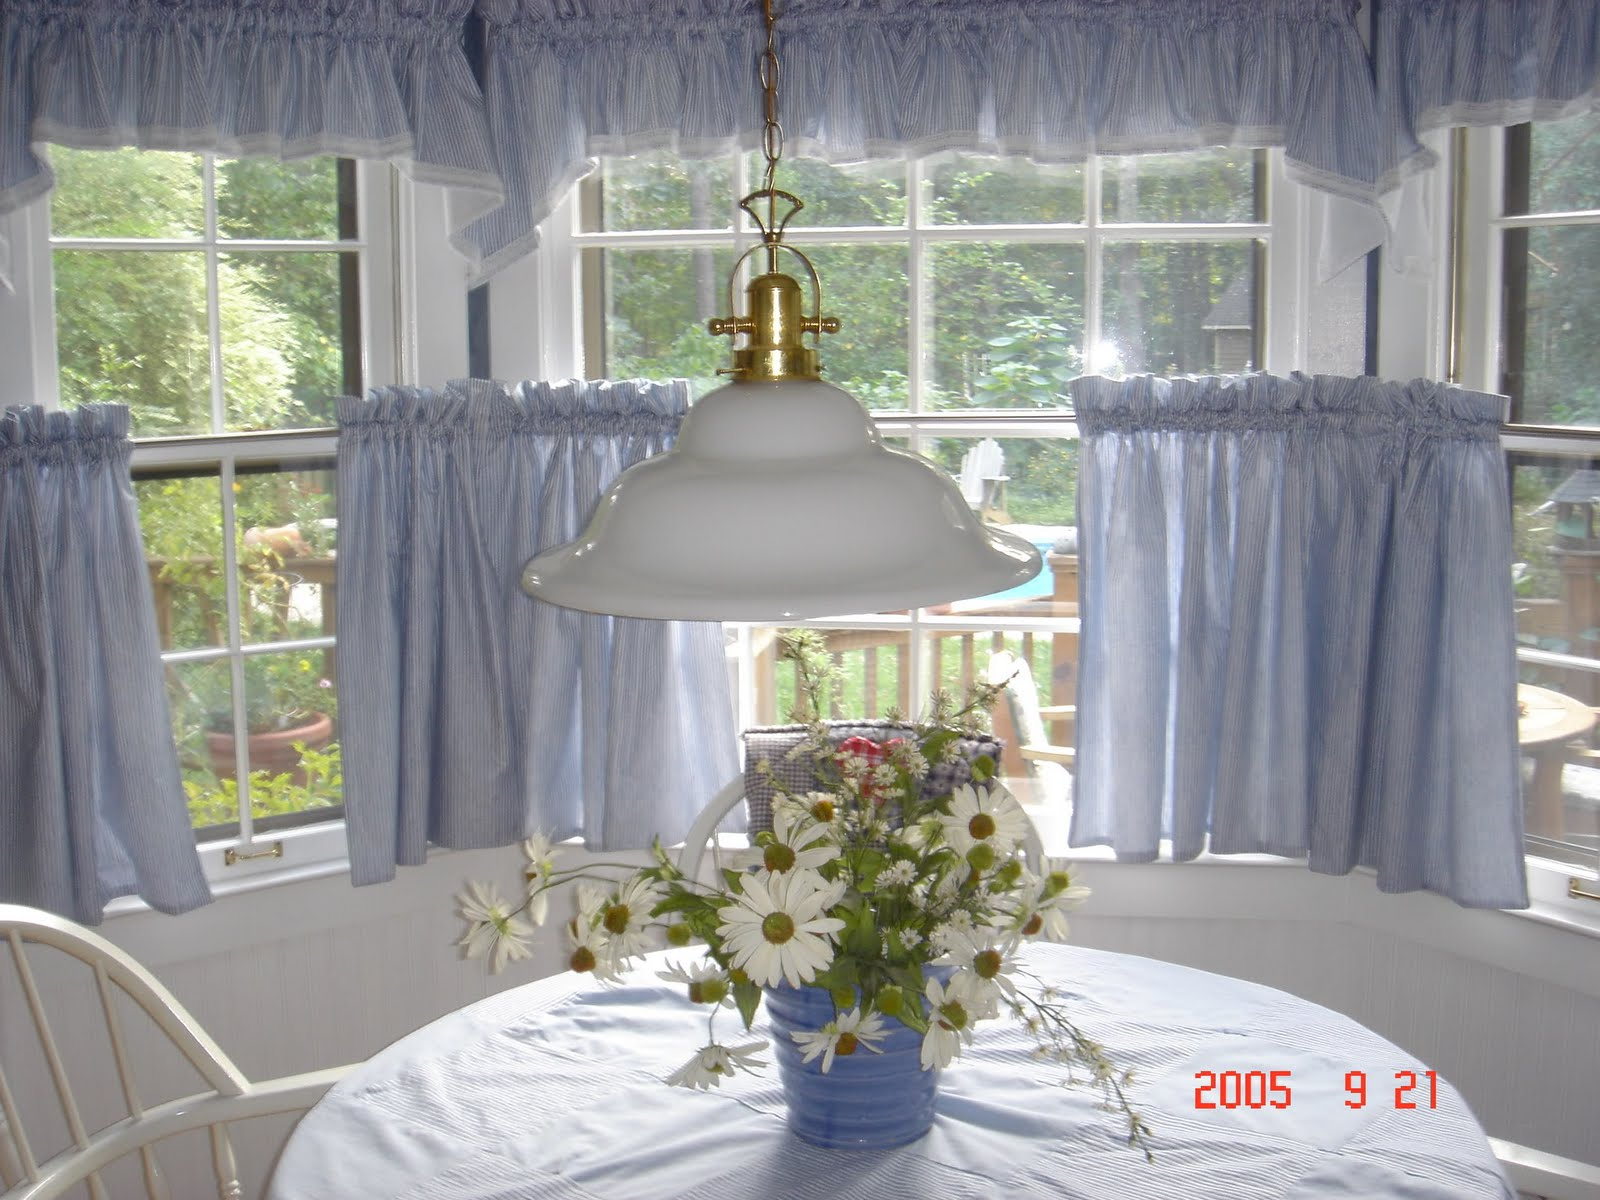 how to hang curtains, how to install curtain rods, how to hang